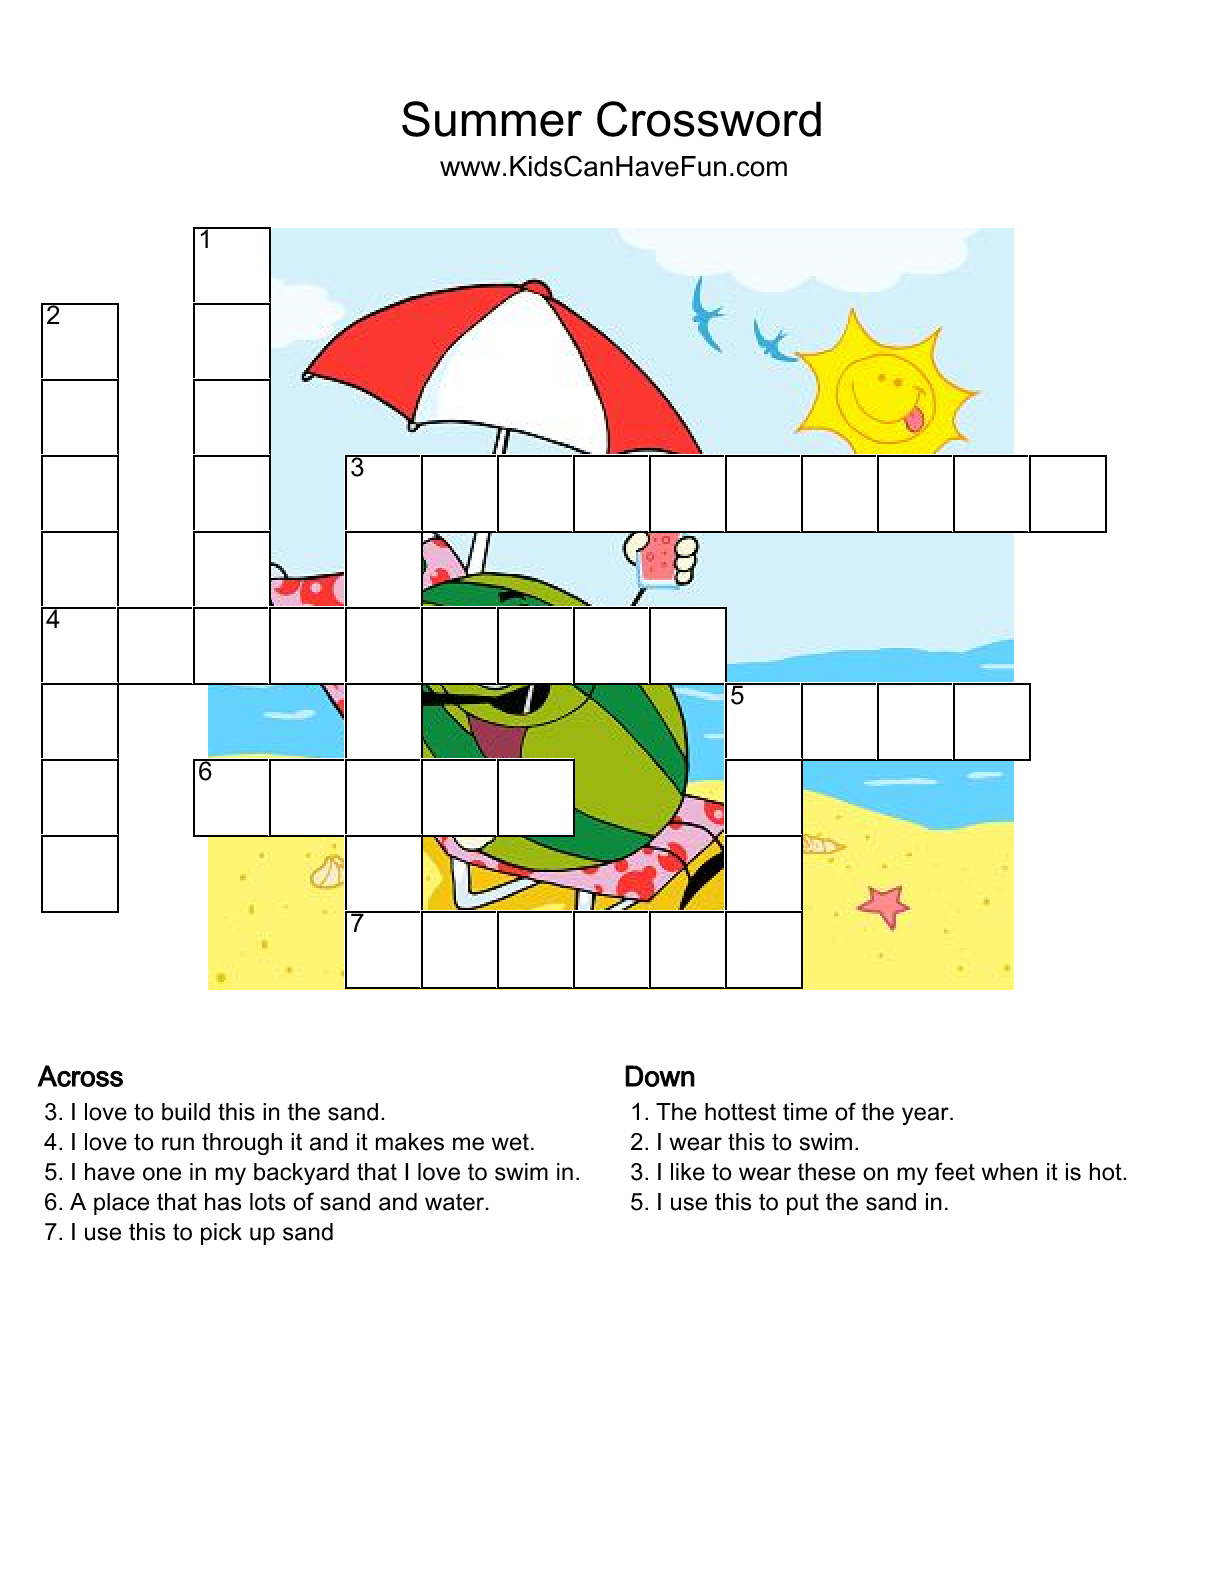 Summer Crossword Puzzle Dscanhavefun